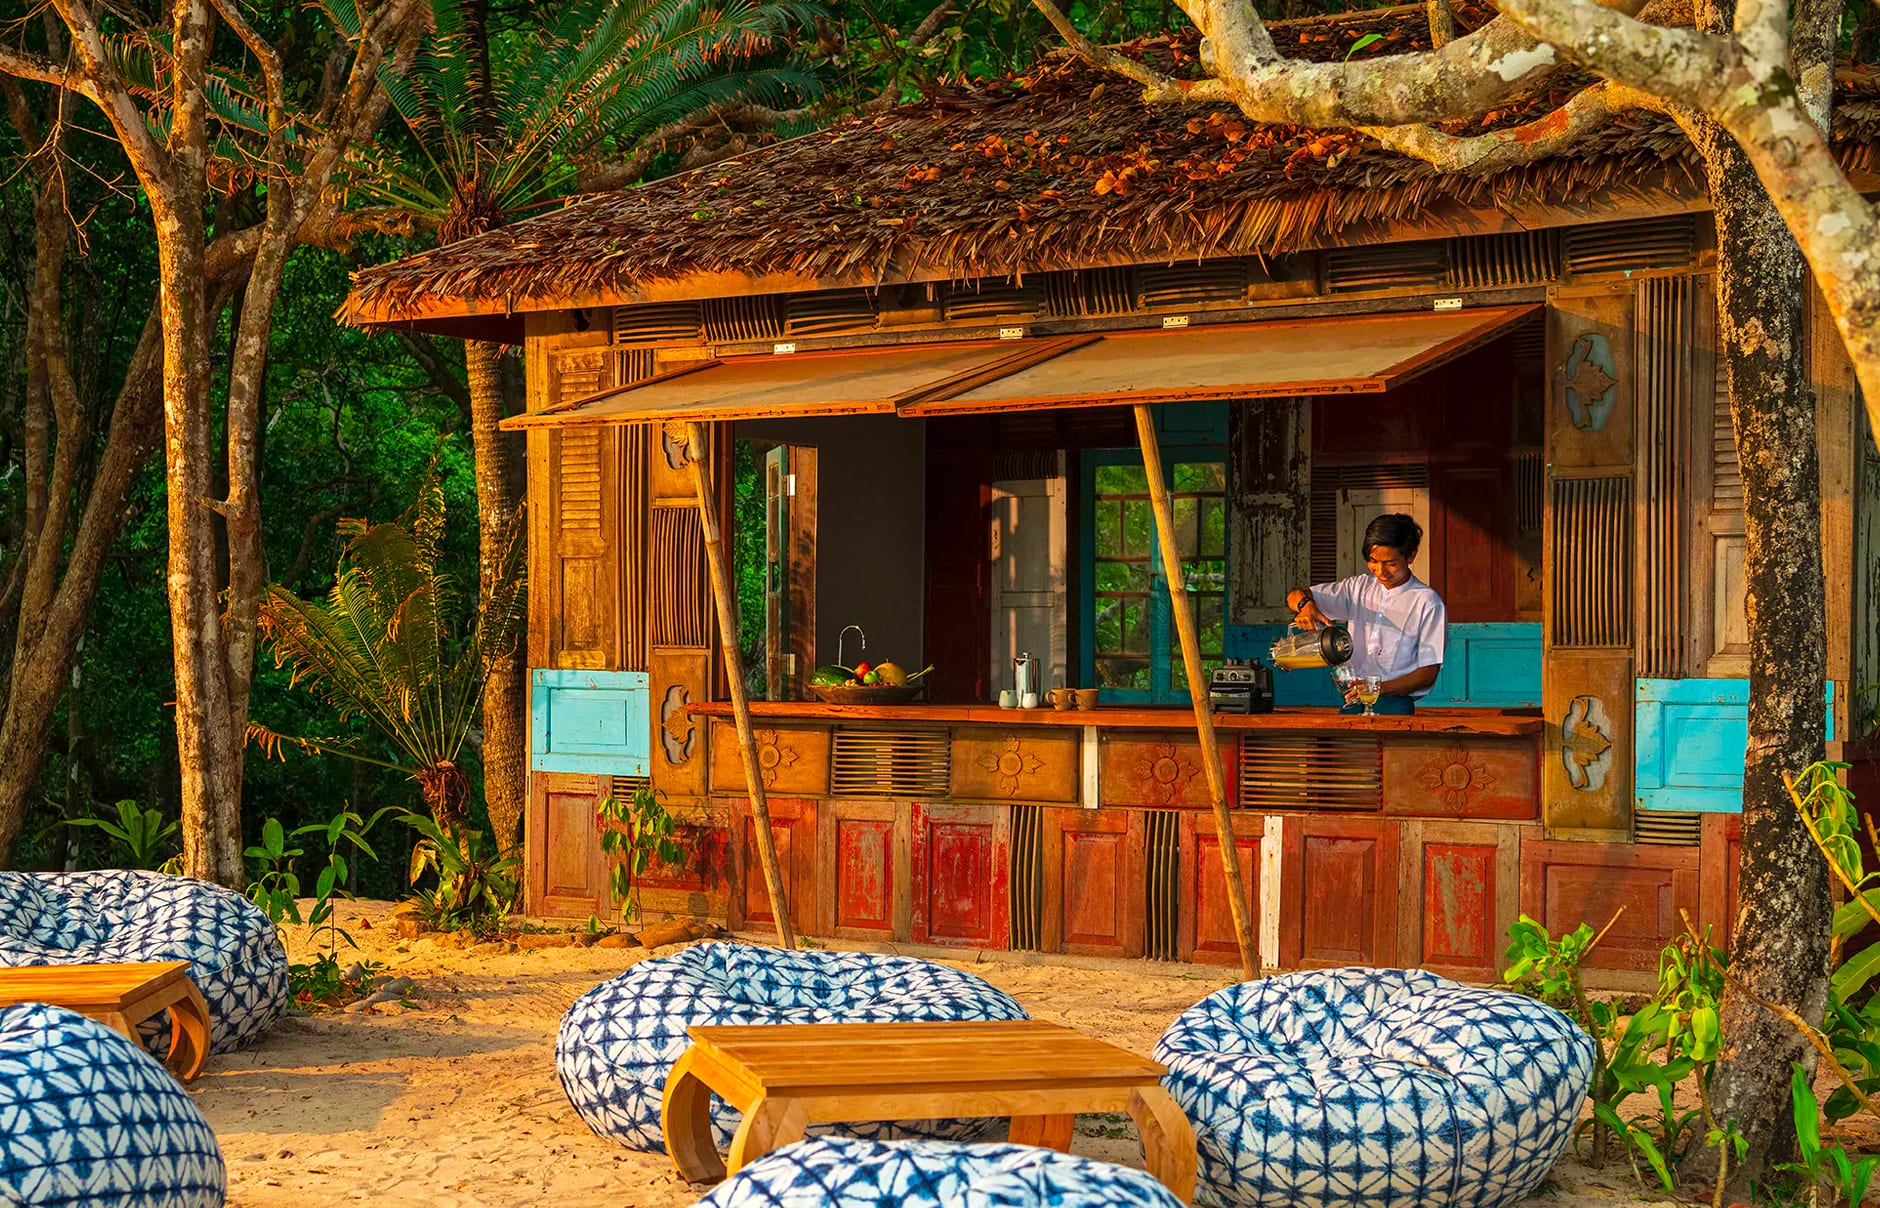 Wa Ale Island Resort, Myeik Archipelago, Myanmar. Hotel Review by TravelPlusStyle. Photo © Wa Ale Island Resort